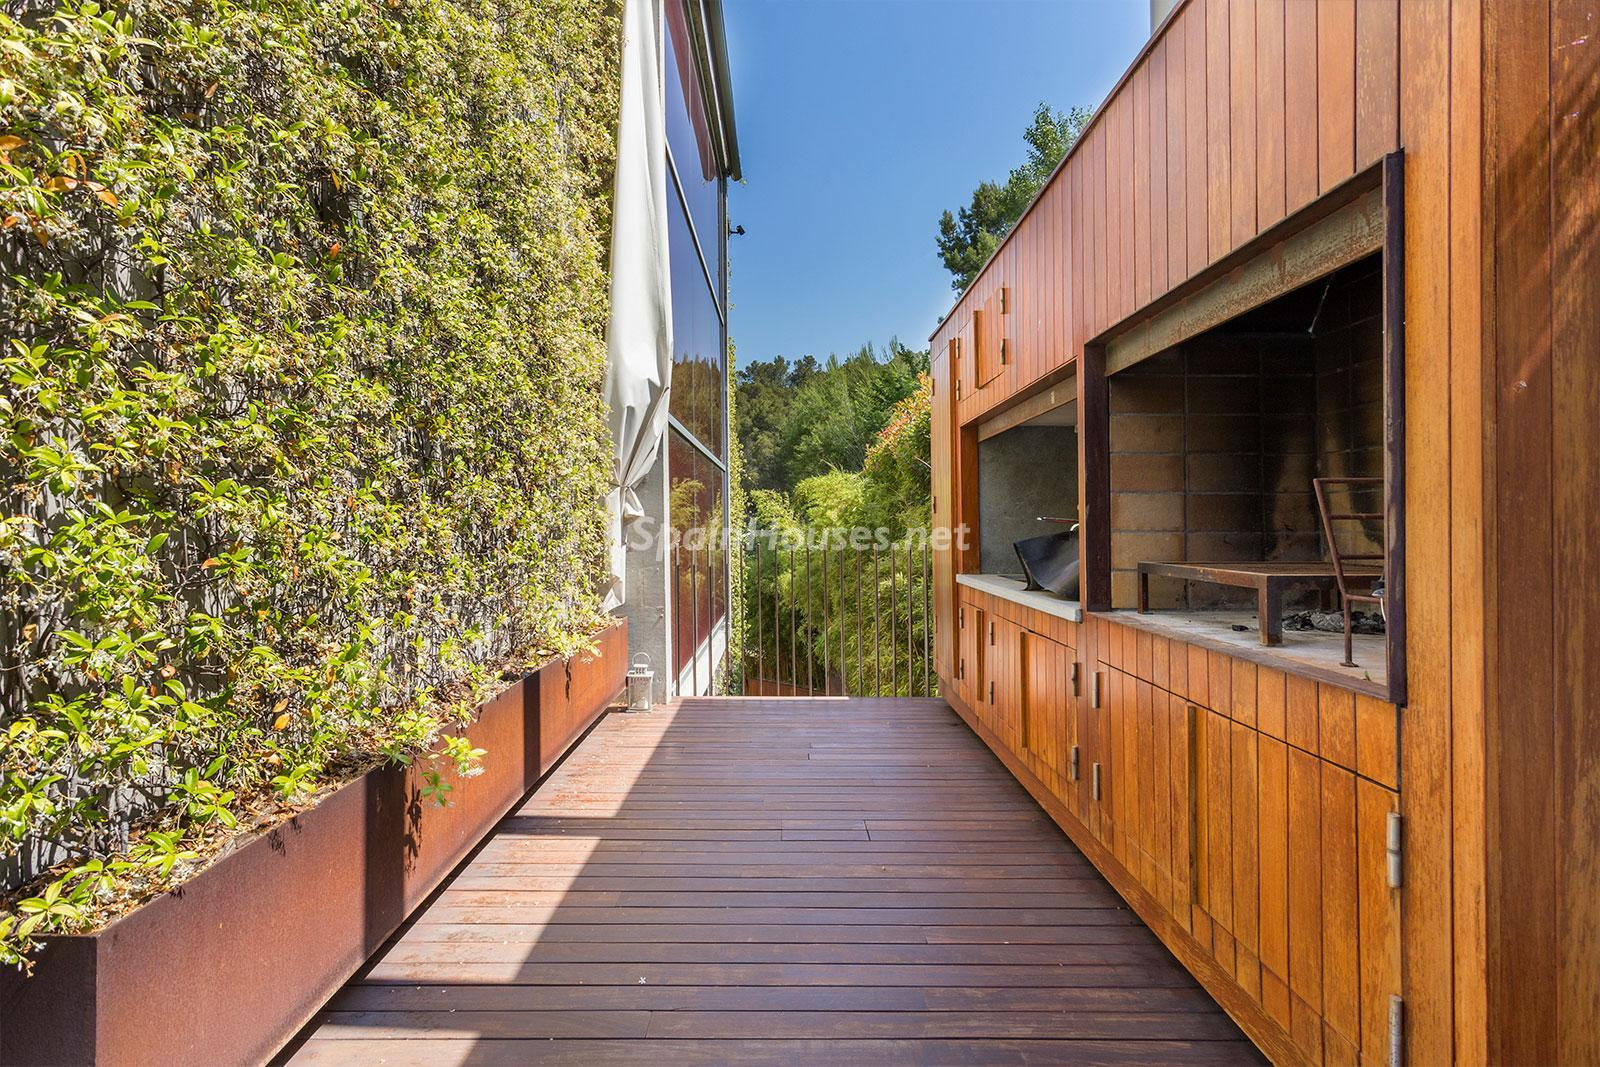 6. House for sale in Barcelona city - Superb 5 bed home in Barcelona features 2 swimming pools and a huge garden